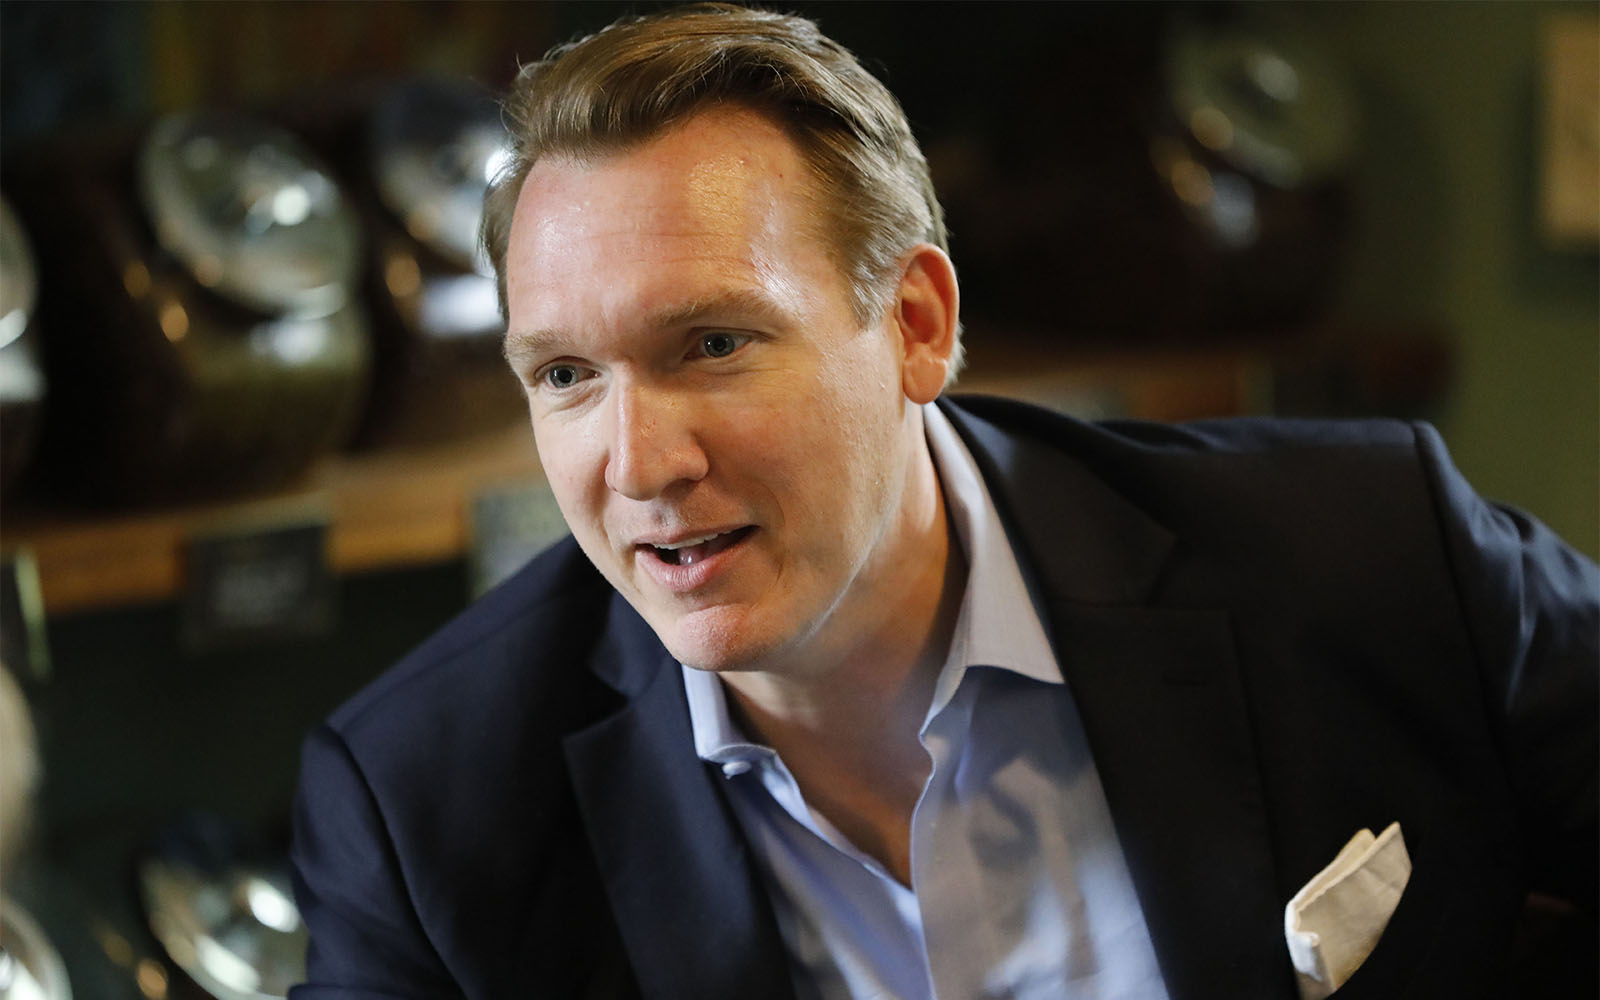 'This is not a time to play it safe': Nate McMurray plans second bid for Congress